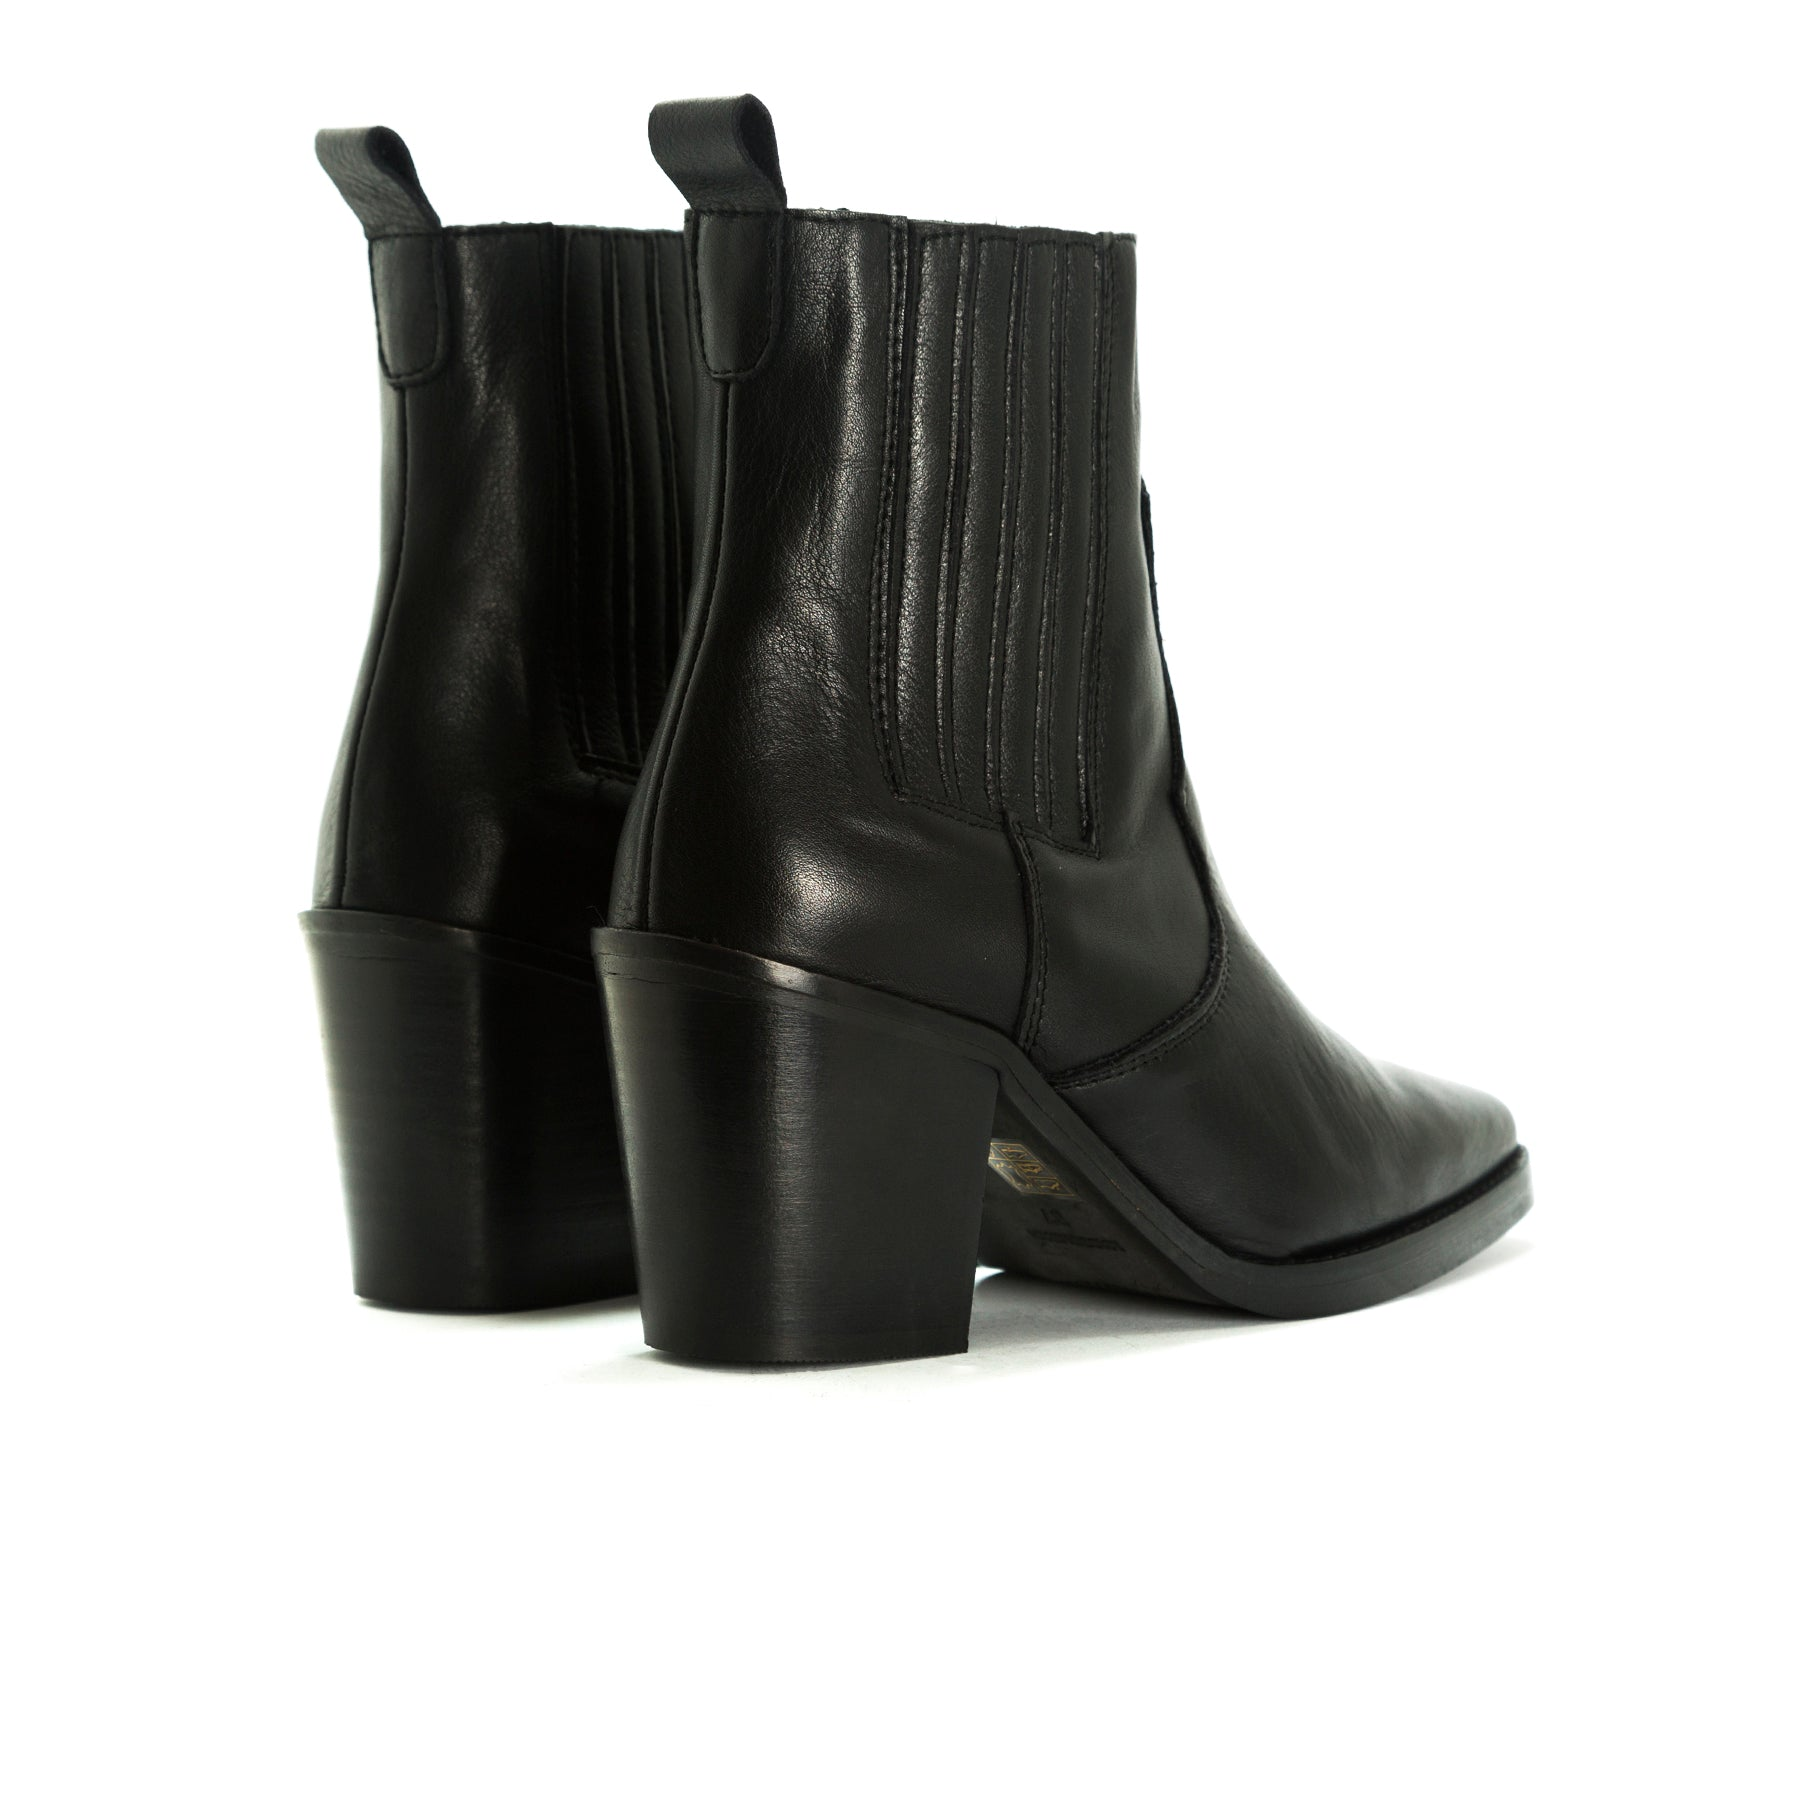 Valentina Black Leather Ankle Boots